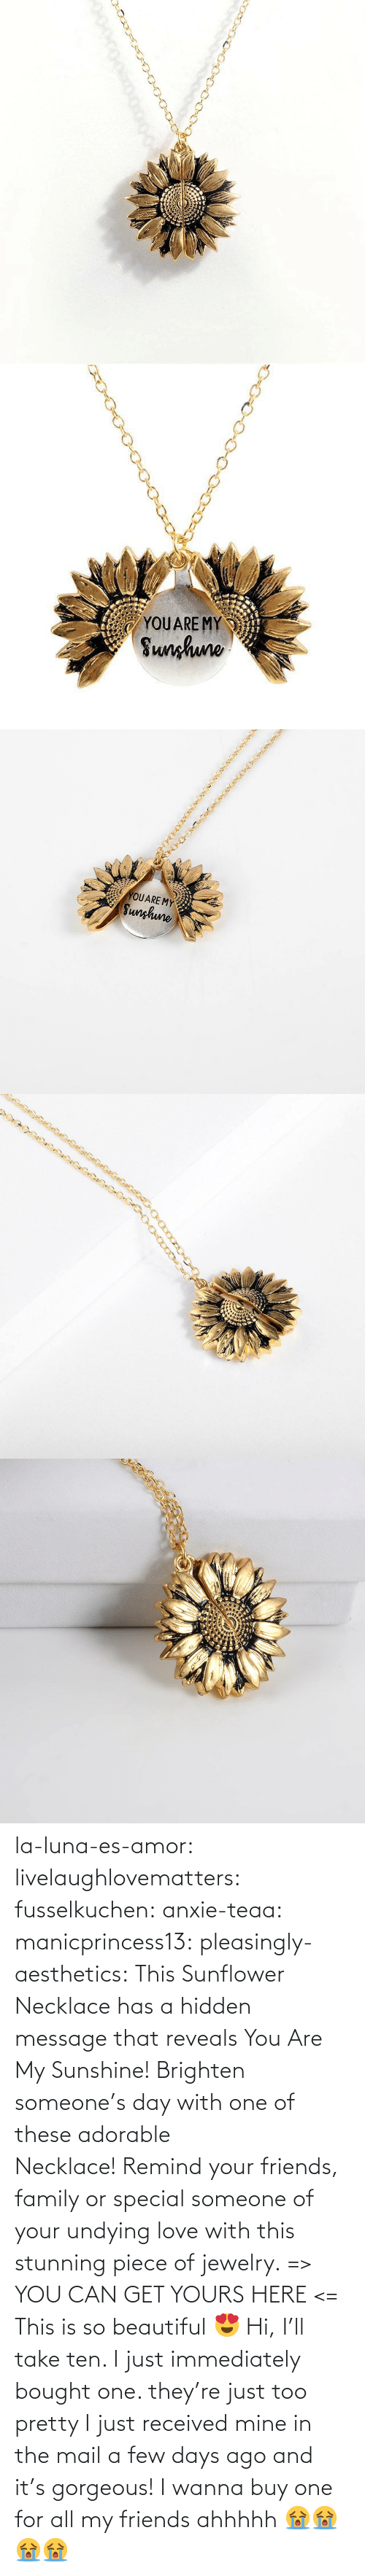 Jewelry: YOUARE MY  Sunhuno   YOUARE MY  Sunghune la-luna-es-amor:  livelaughlovematters: fusselkuchen:  anxie-teaa:   manicprincess13:   pleasingly-aesthetics:  This Sunflower Necklace has a hidden message that reveals You Are My Sunshine! Brighten someone's day with one of these adorable Necklace! Remind your friends, family or special someone of your undying love with this stunning piece of jewelry. => YOU CAN GET YOURS HERE <=   This is so beautiful 😍    Hi, I'll take ten.    I just immediately bought one. they're just too pretty   I just received mine in the mail a few days ago and it's gorgeous!   I wanna buy one for all my friends ahhhhh 😭😭😭😭